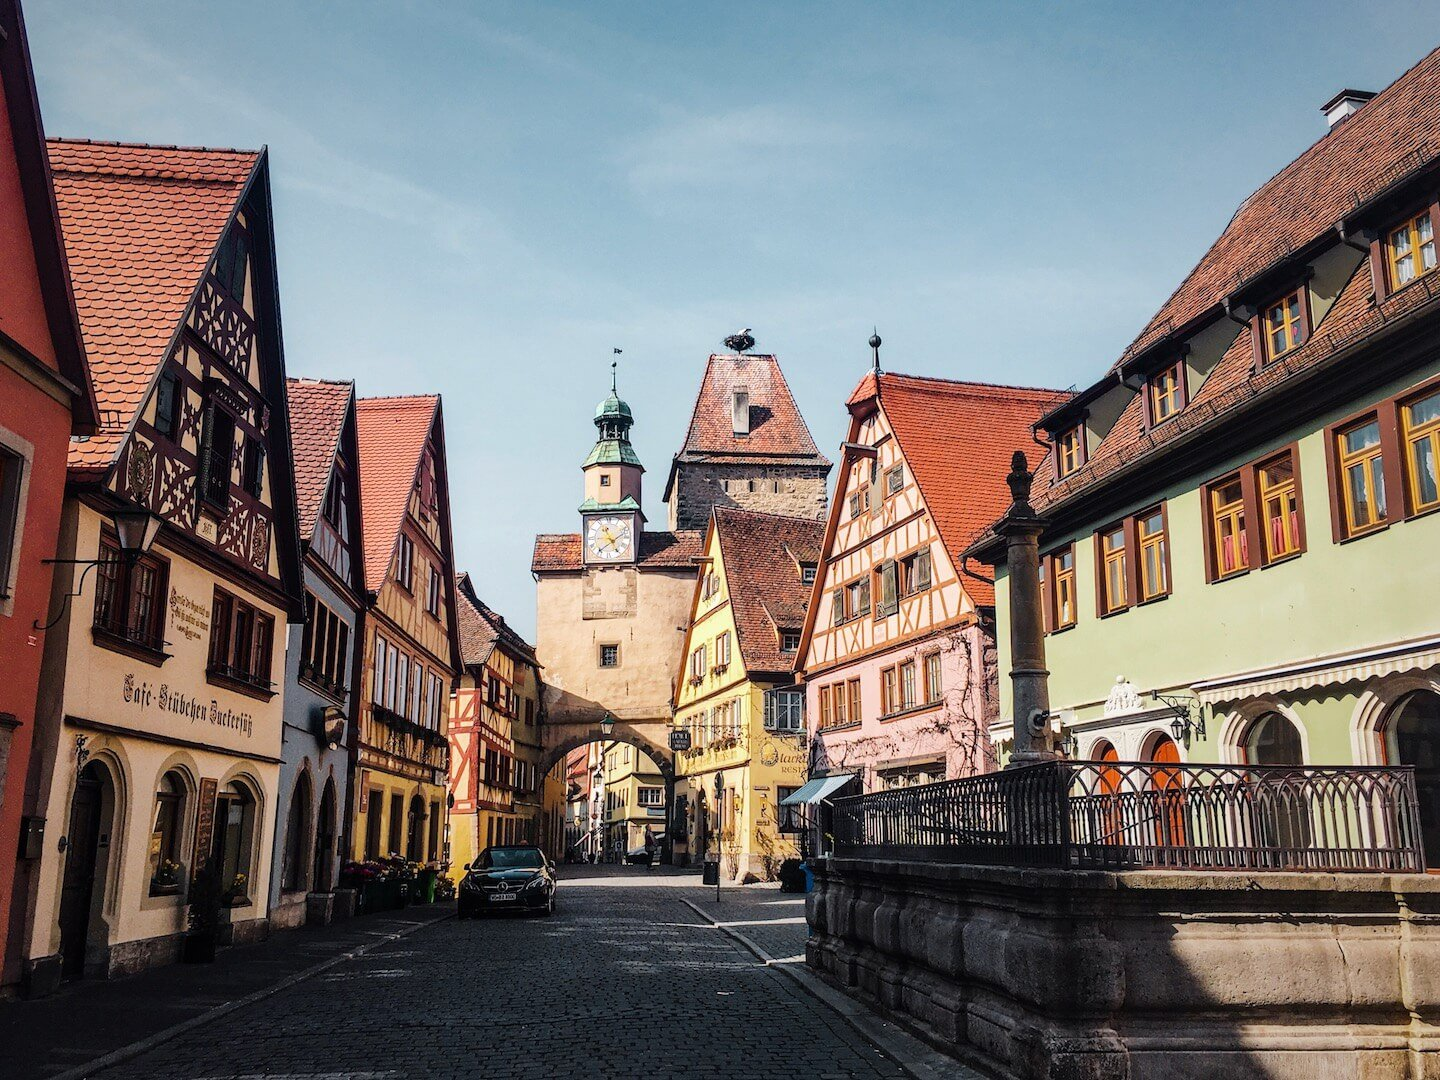 Rothenburg ob der Tauber, Germany Travel Guide - where to go, what to see, what to experience, what to eat and drink